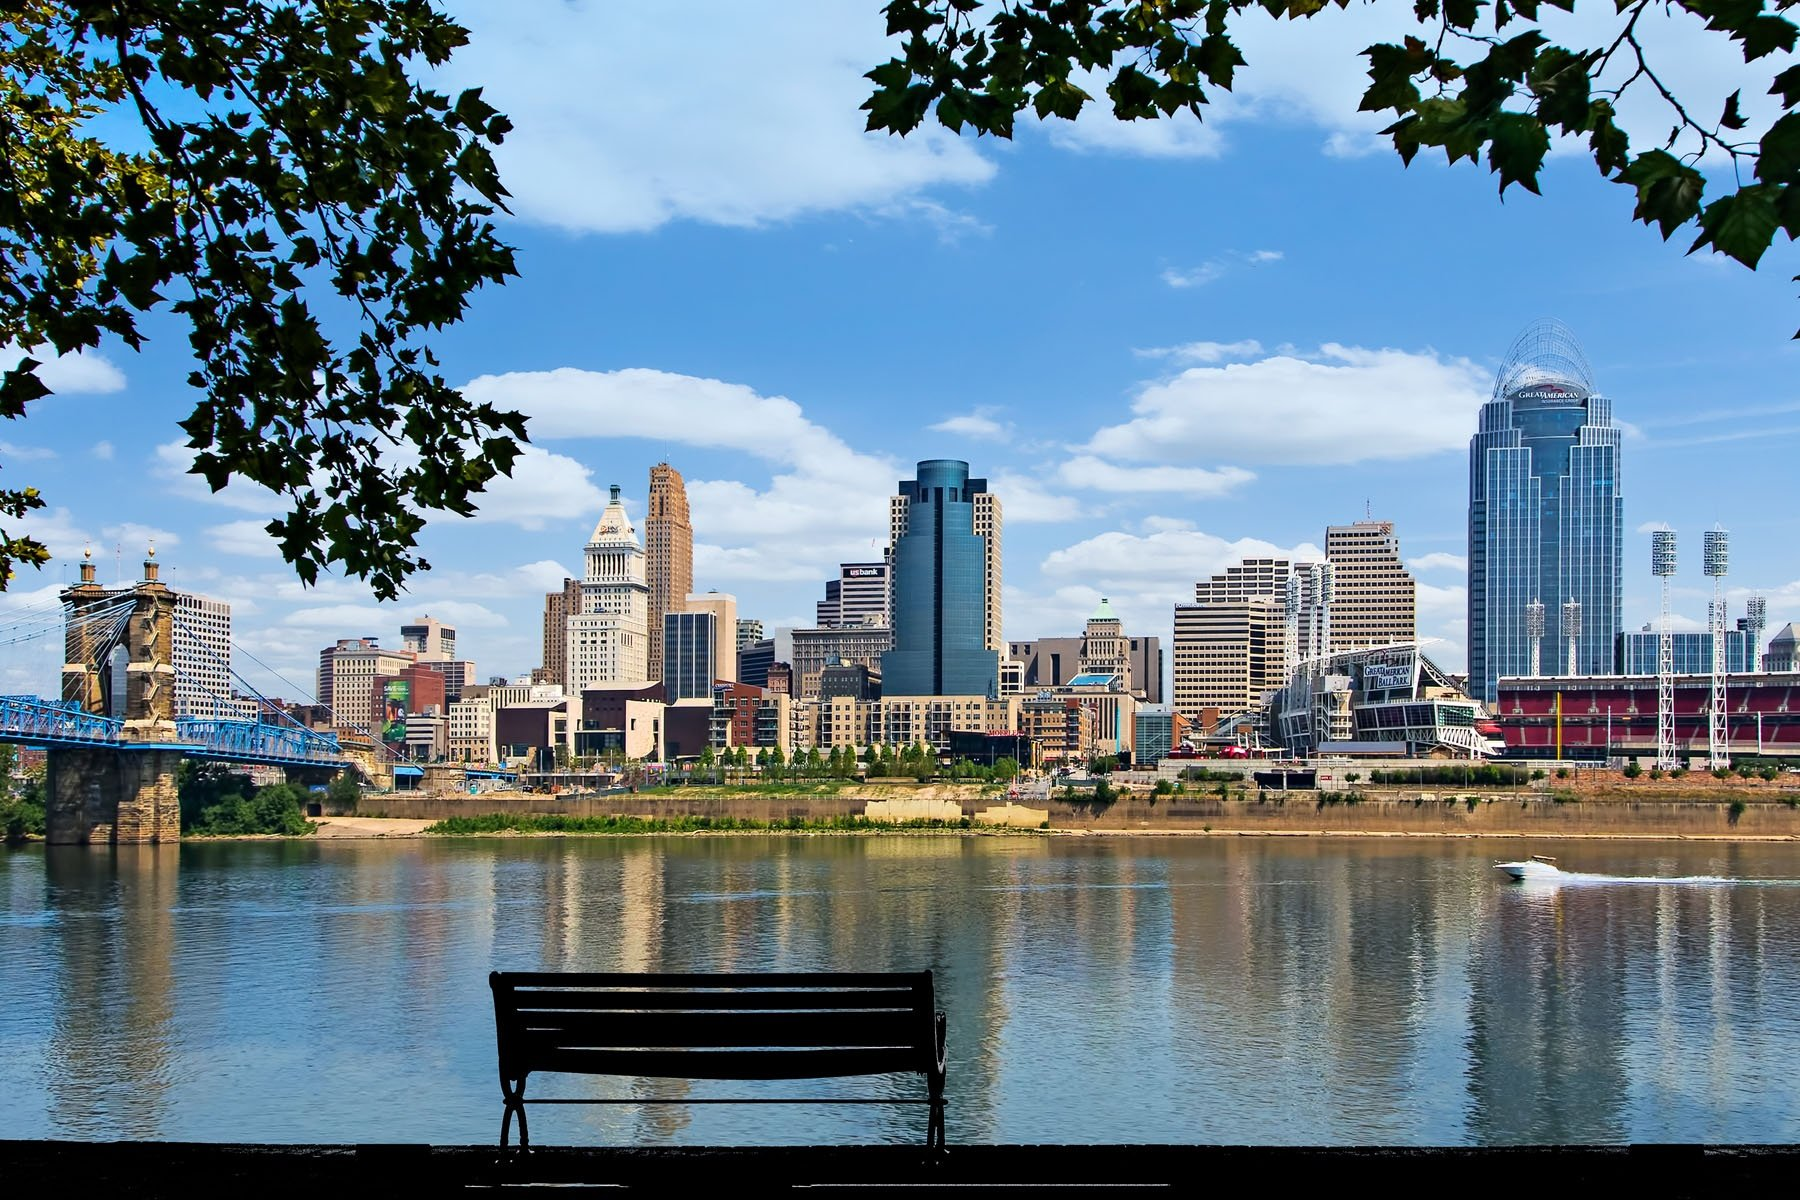 FROM RIVERSIDE DRIVE - Not only is it a pleasant walk along Riverside Dr. in Newport, it's also a wonderful view of Cincinnati.